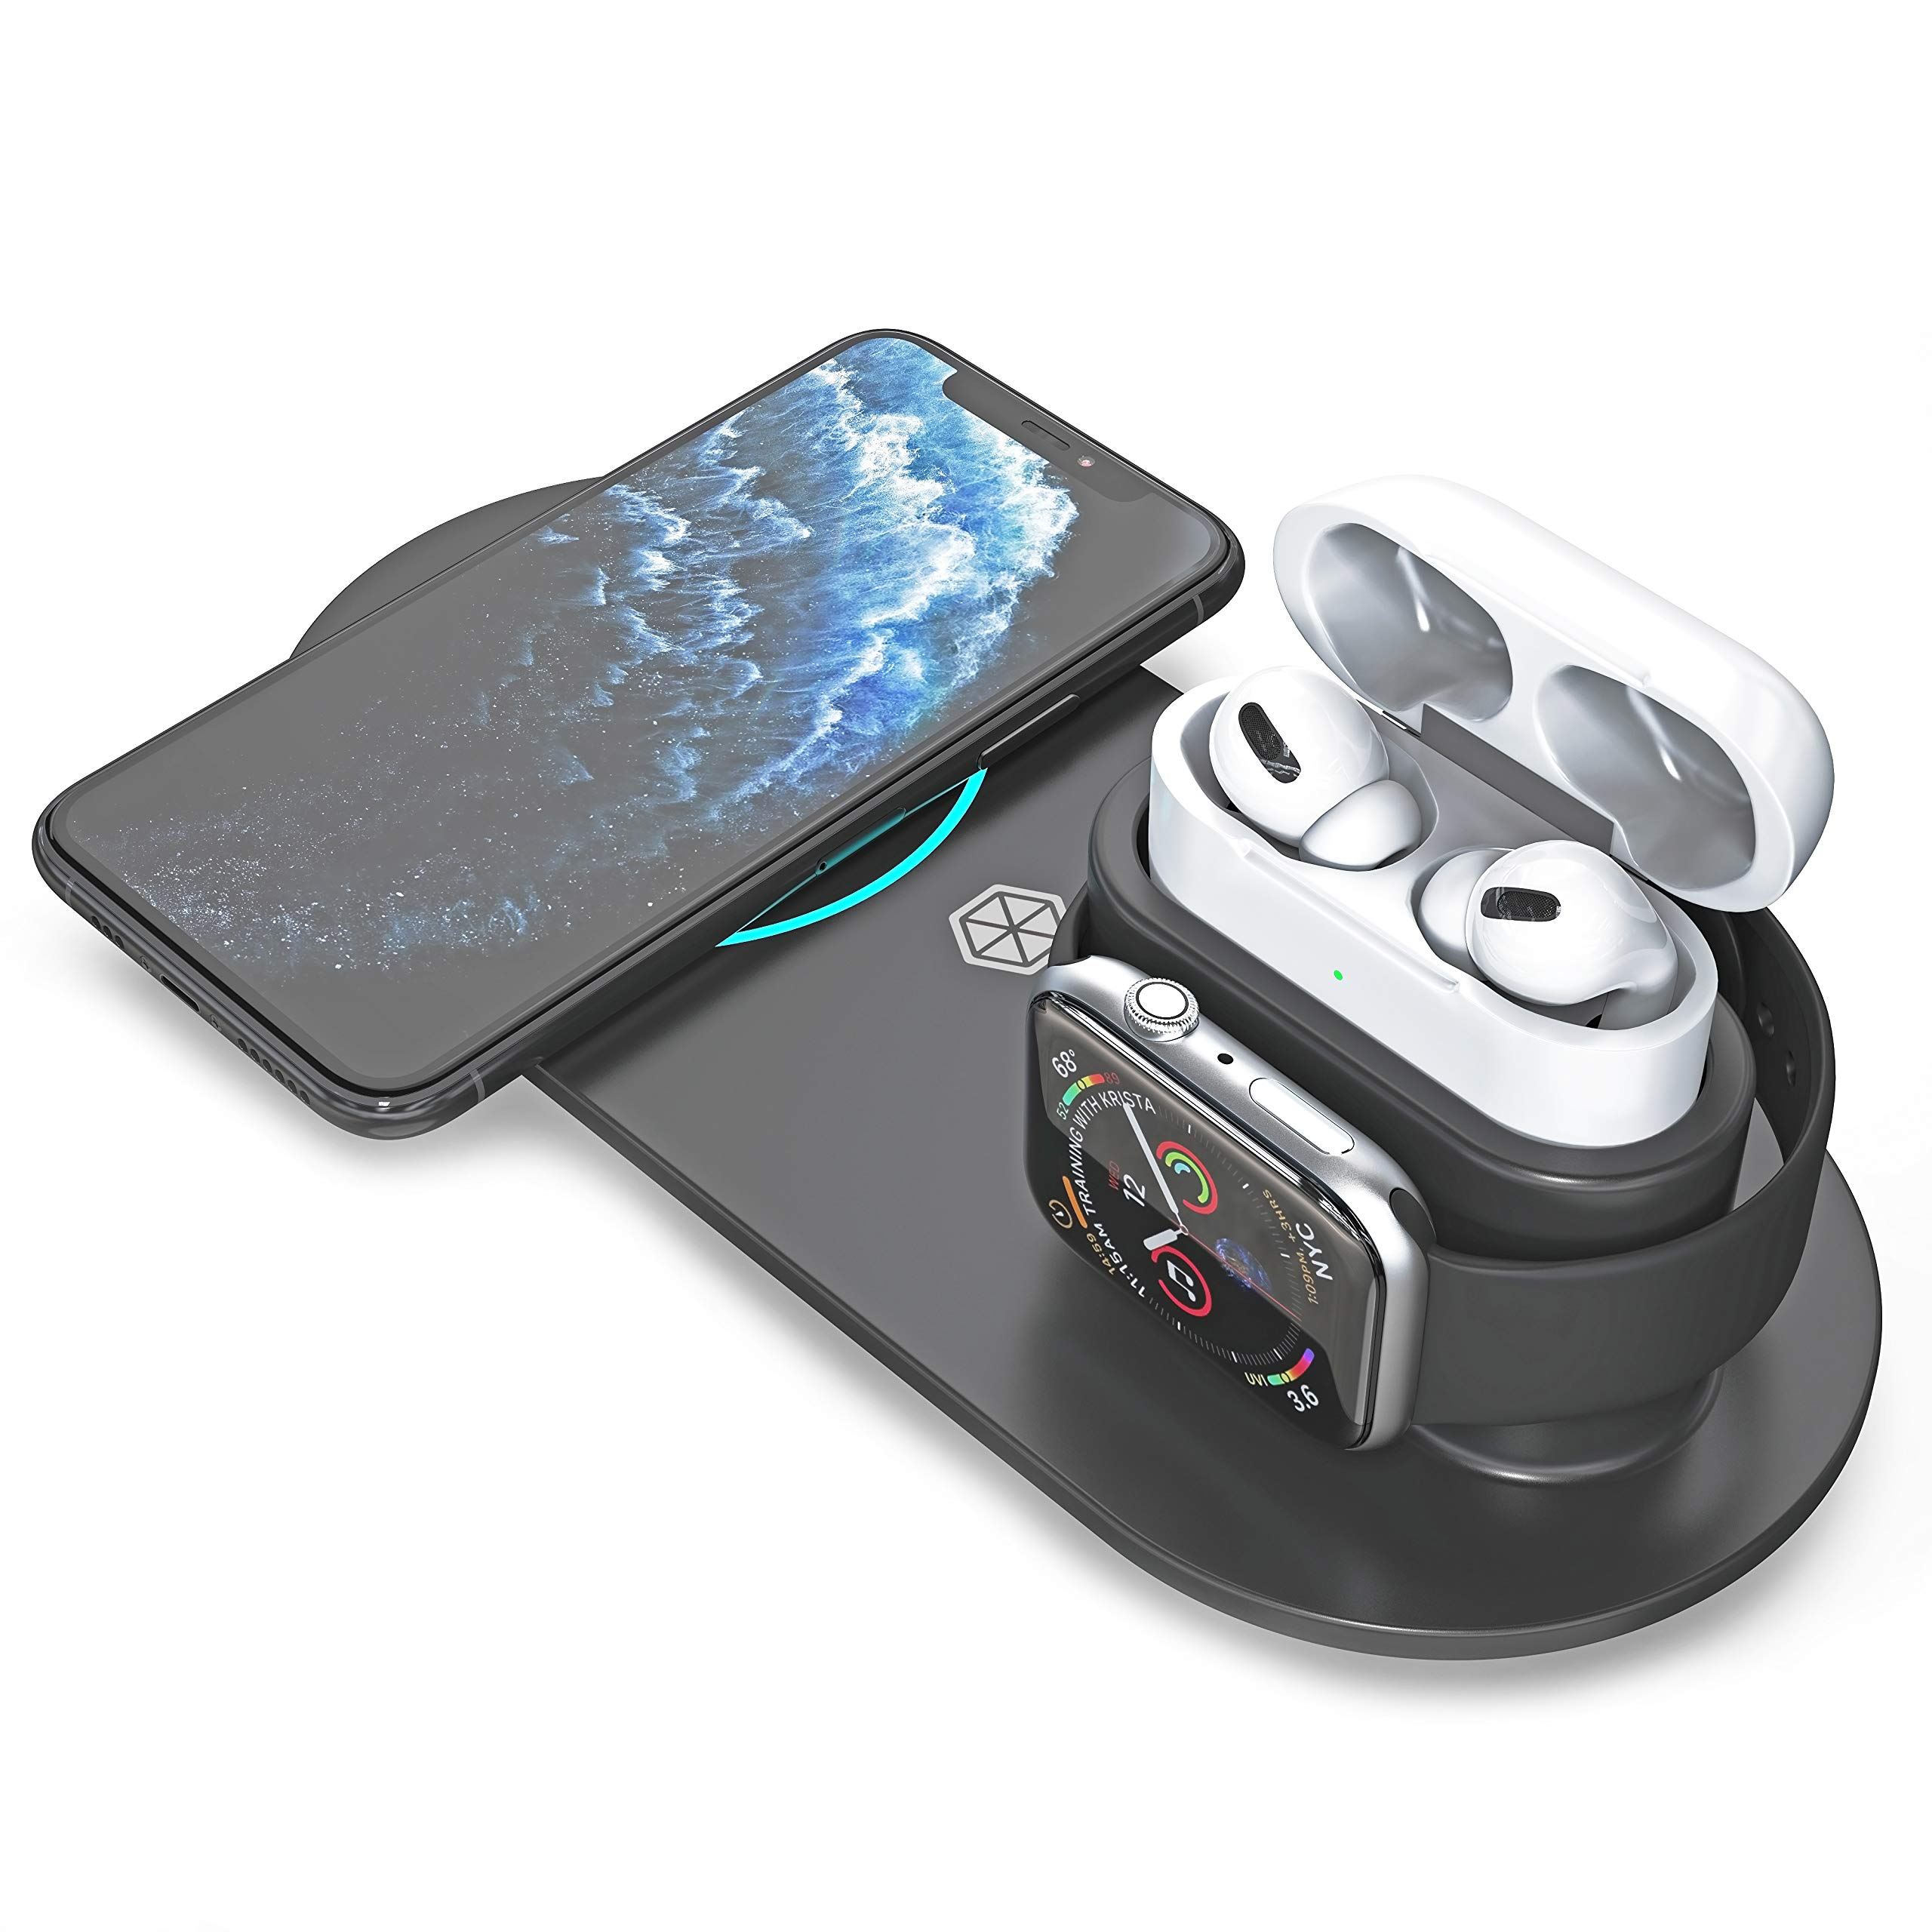 Amazon Com Limeflex 3 In 1 Wireless Charging Station Multi Charger Pad Compatible With Apple Watch Airpods Iphone Samsung Galaxy Note Qi Devices Fast Charging Dock With Qc 3 0 Adapter,2 Bedroom Small Two Bedroom Apartment Layout